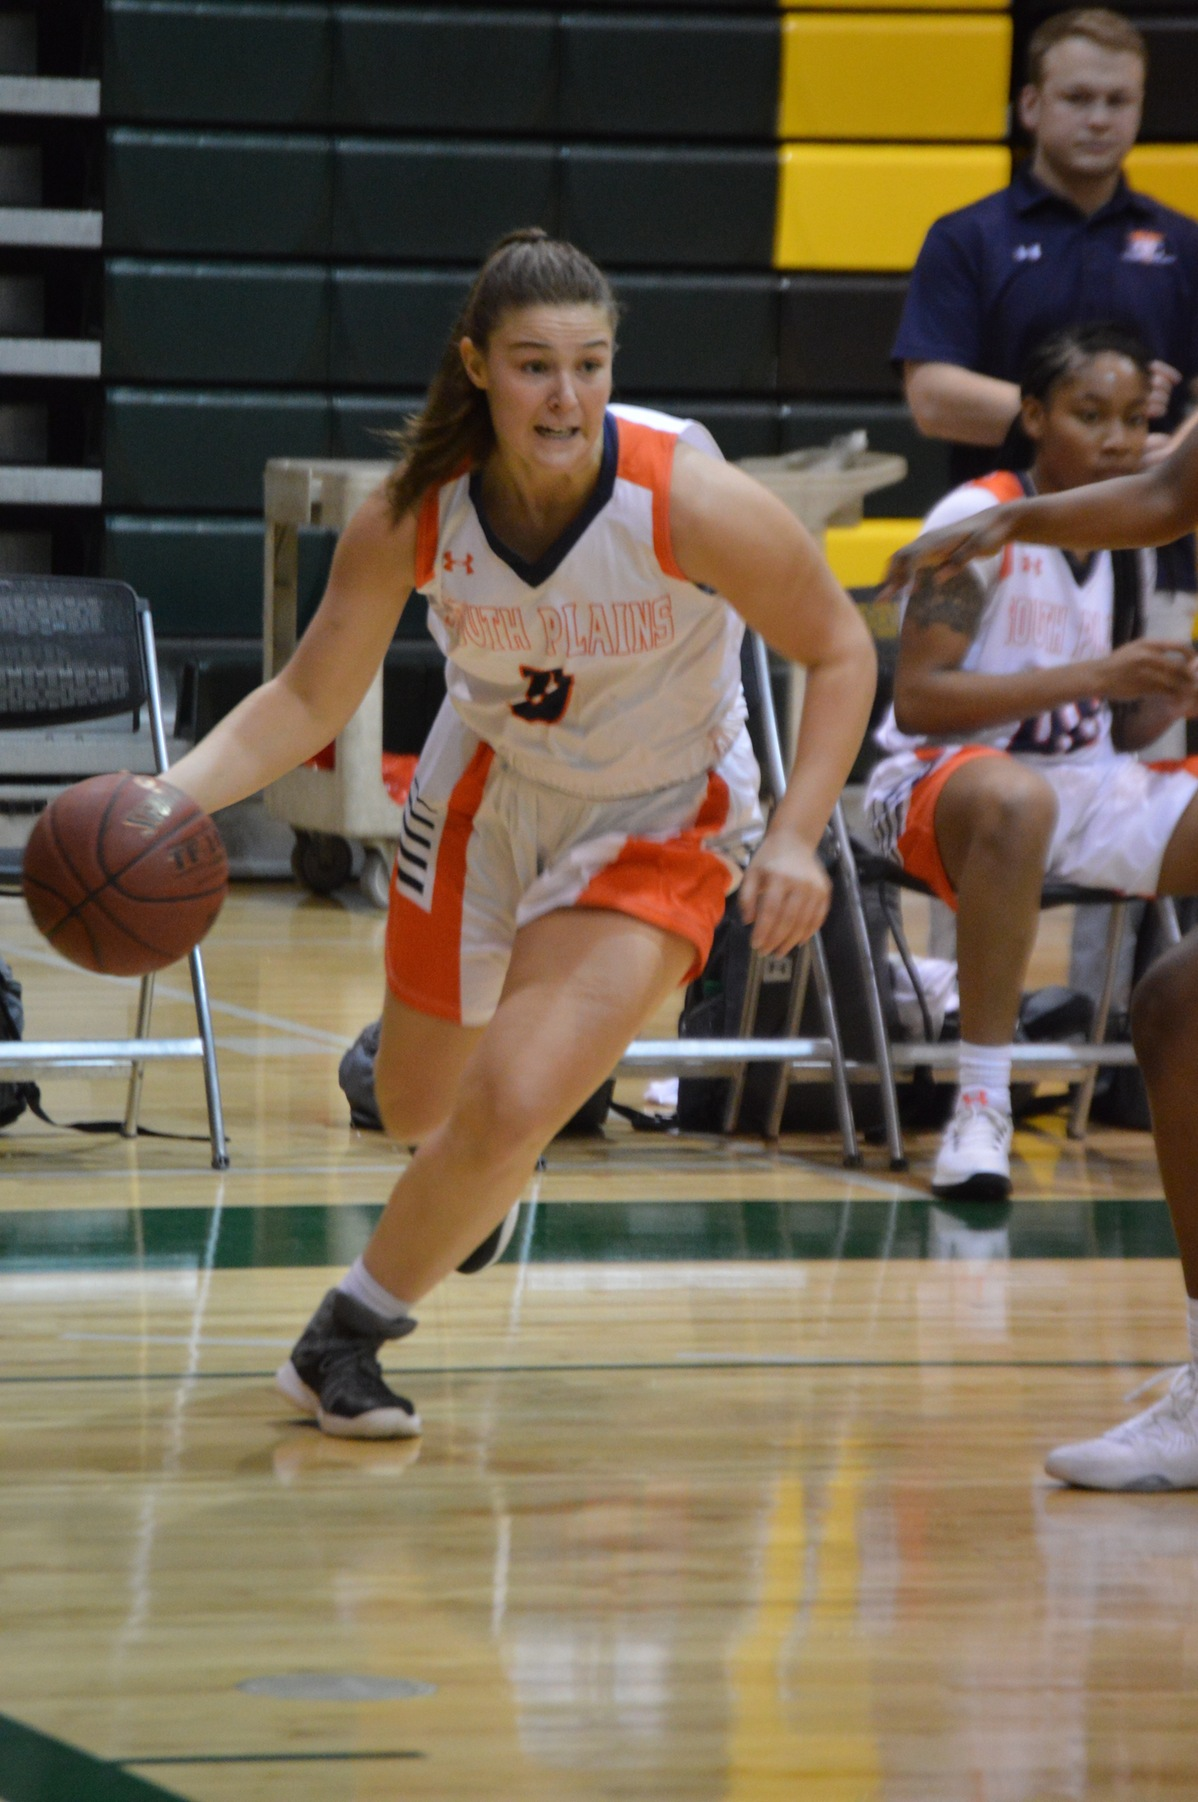 Lady Texans rally to down Scottsdale 75-53 Saturday in Arizona